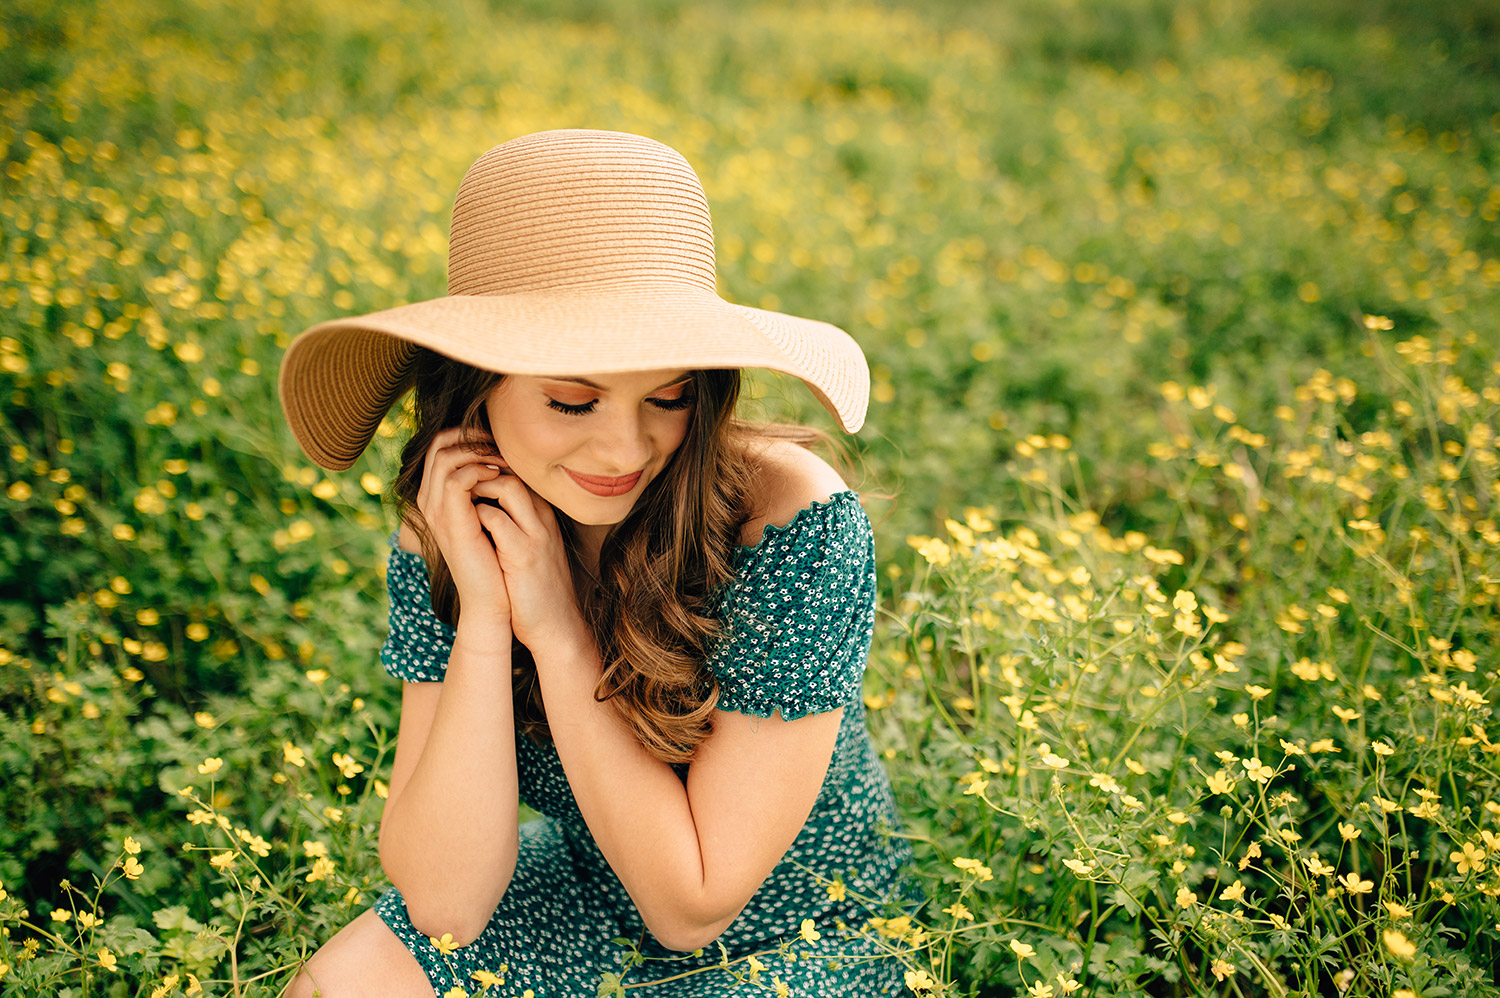 teenage girl in green dress and sunhat